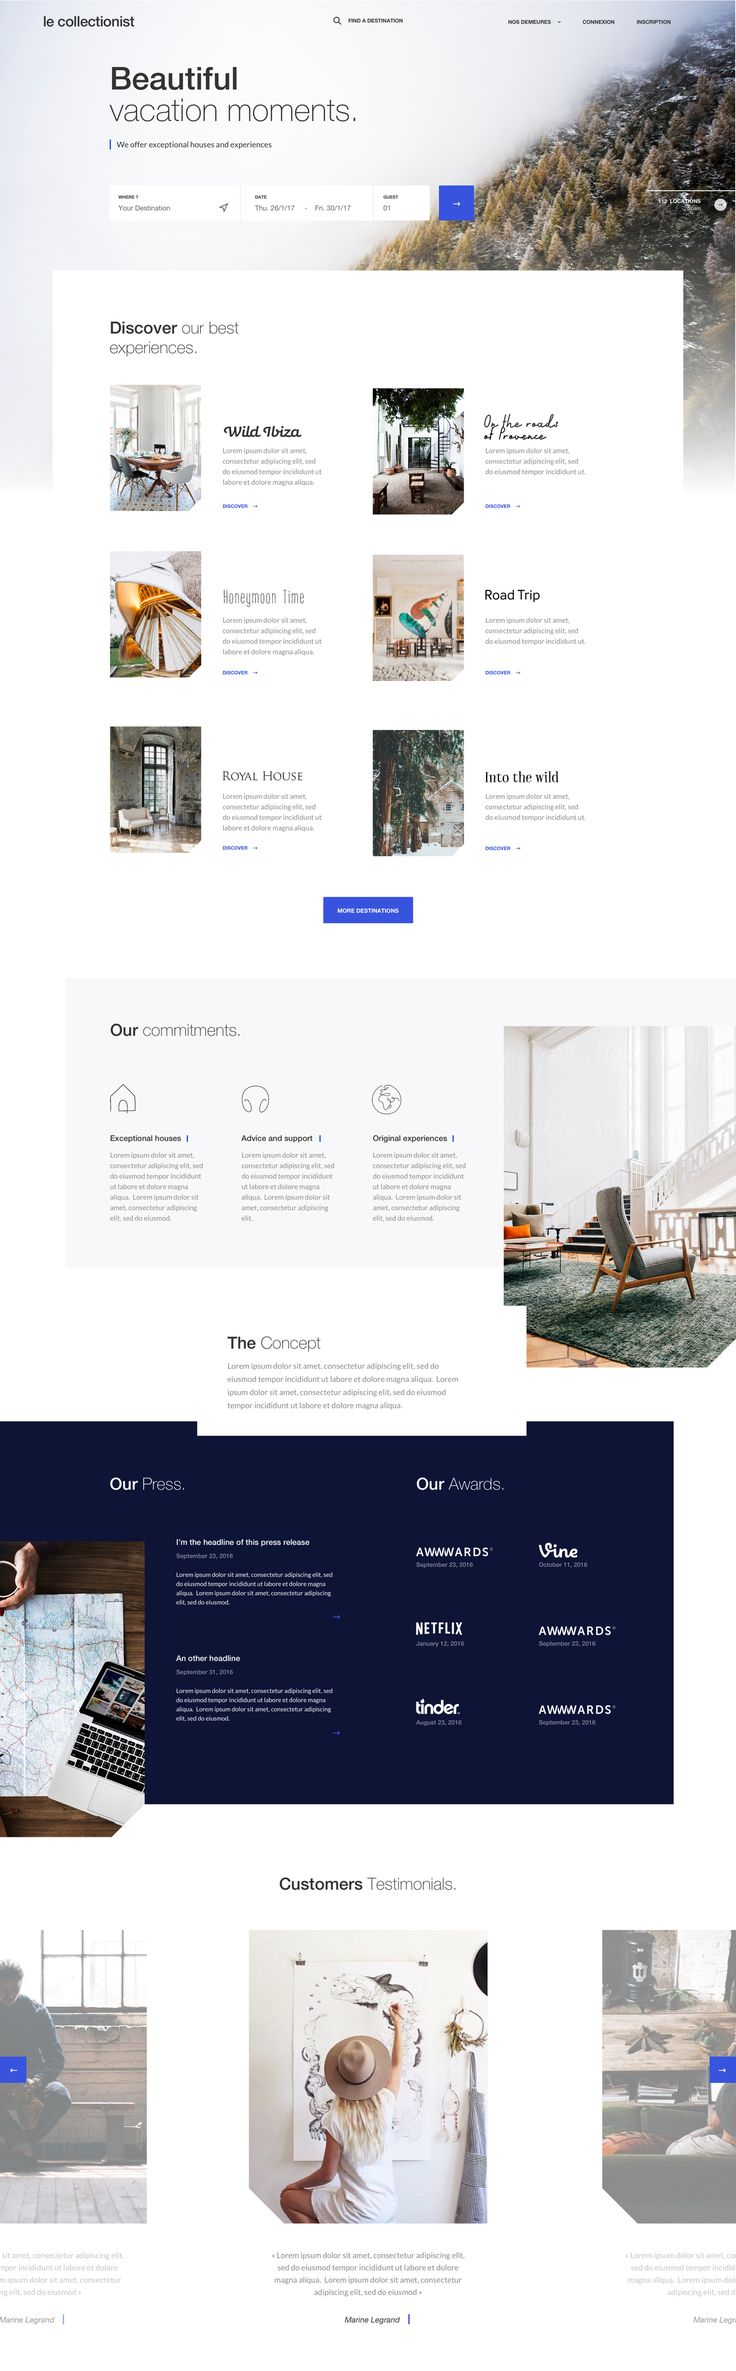 Trip Experience Concept / Barthelemy Chalvet